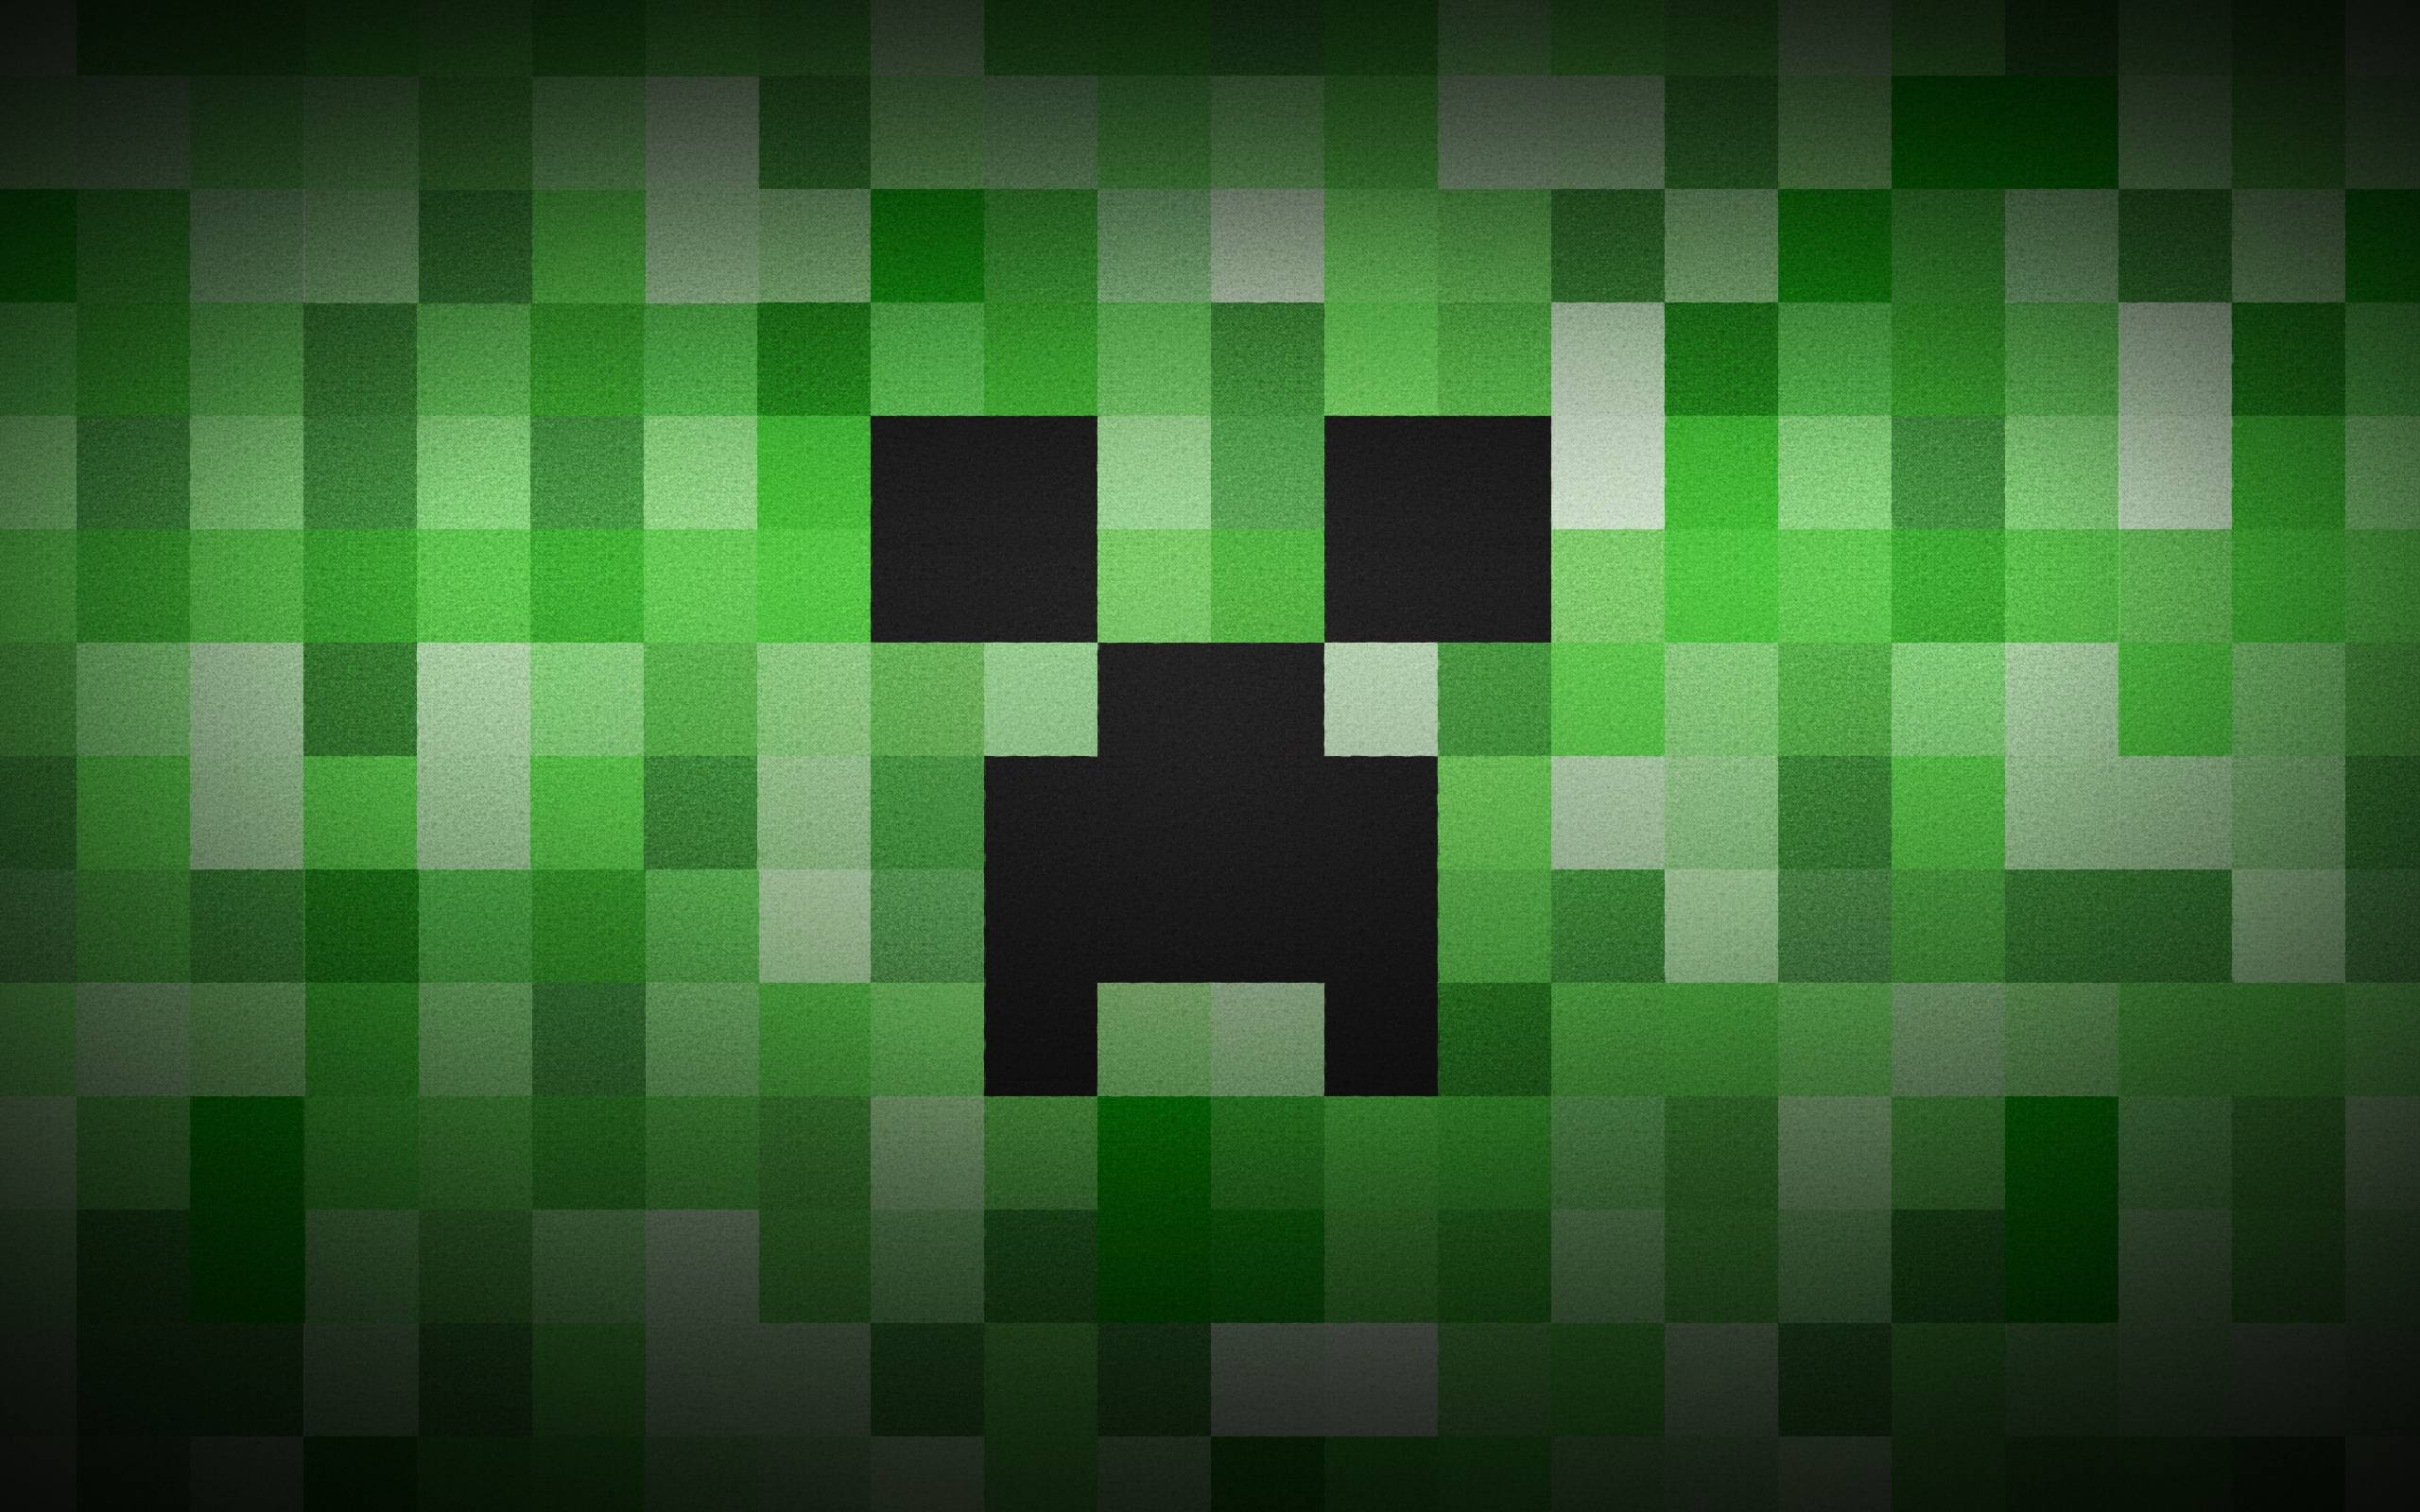 Creeper Face Wallpapers Wallpaper Cave HD Wallpapers Download Free Images Wallpaper [1000image.com]